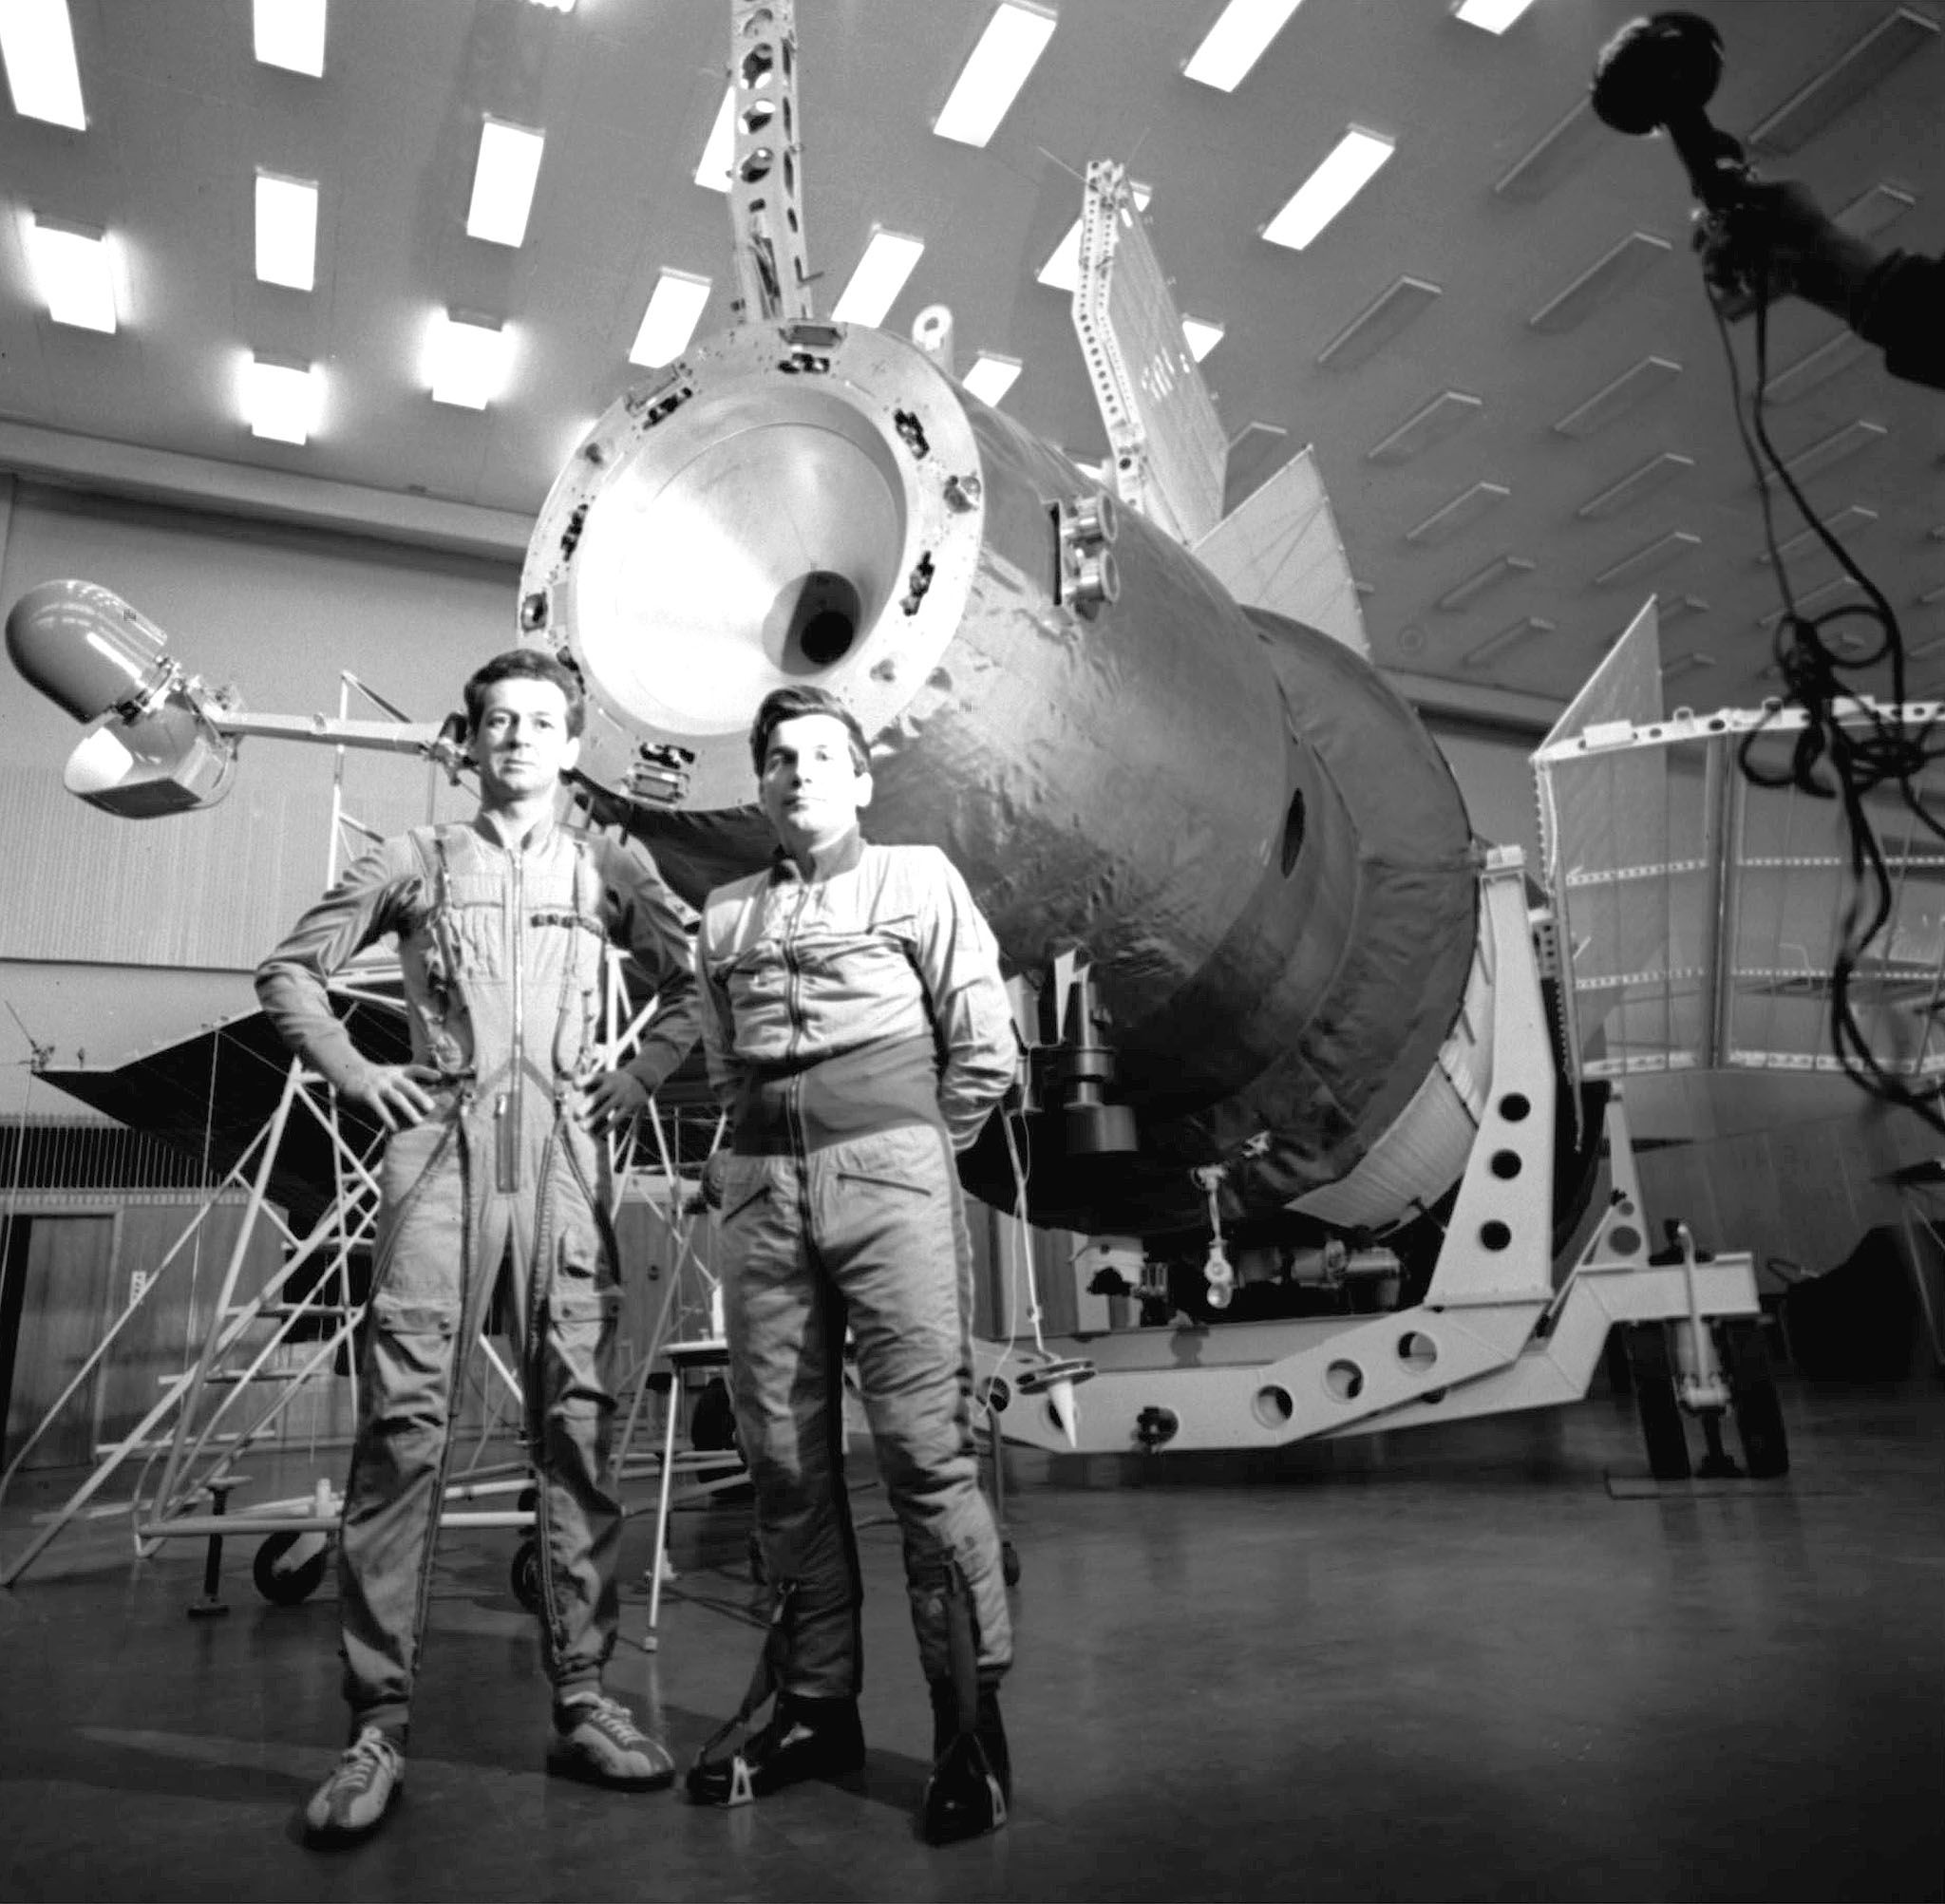 Salyut 4 orbital station second crew members Pyotr Klimuk and Vitaly Sevastyanov before training session, 1975